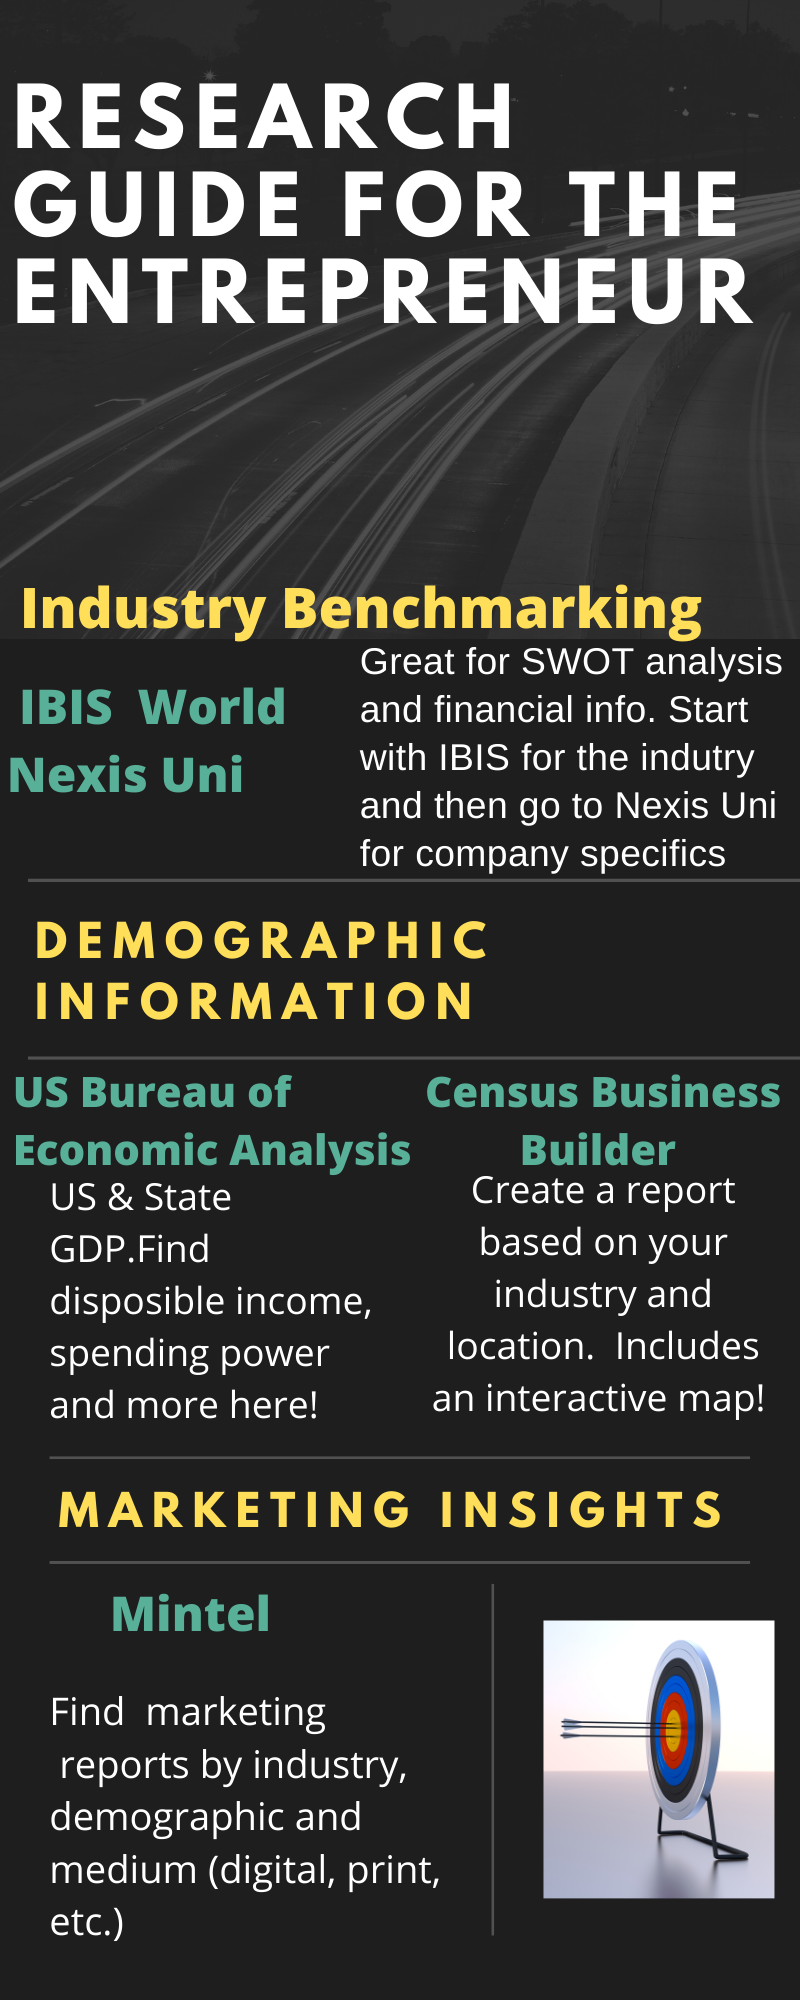 Infographic: Research Guide for the entrepreneur. Check out IBIS World & Nexis Uni for industry and company information, look at several US census bureau websites for demographic information and use Mintel to find marketing information.